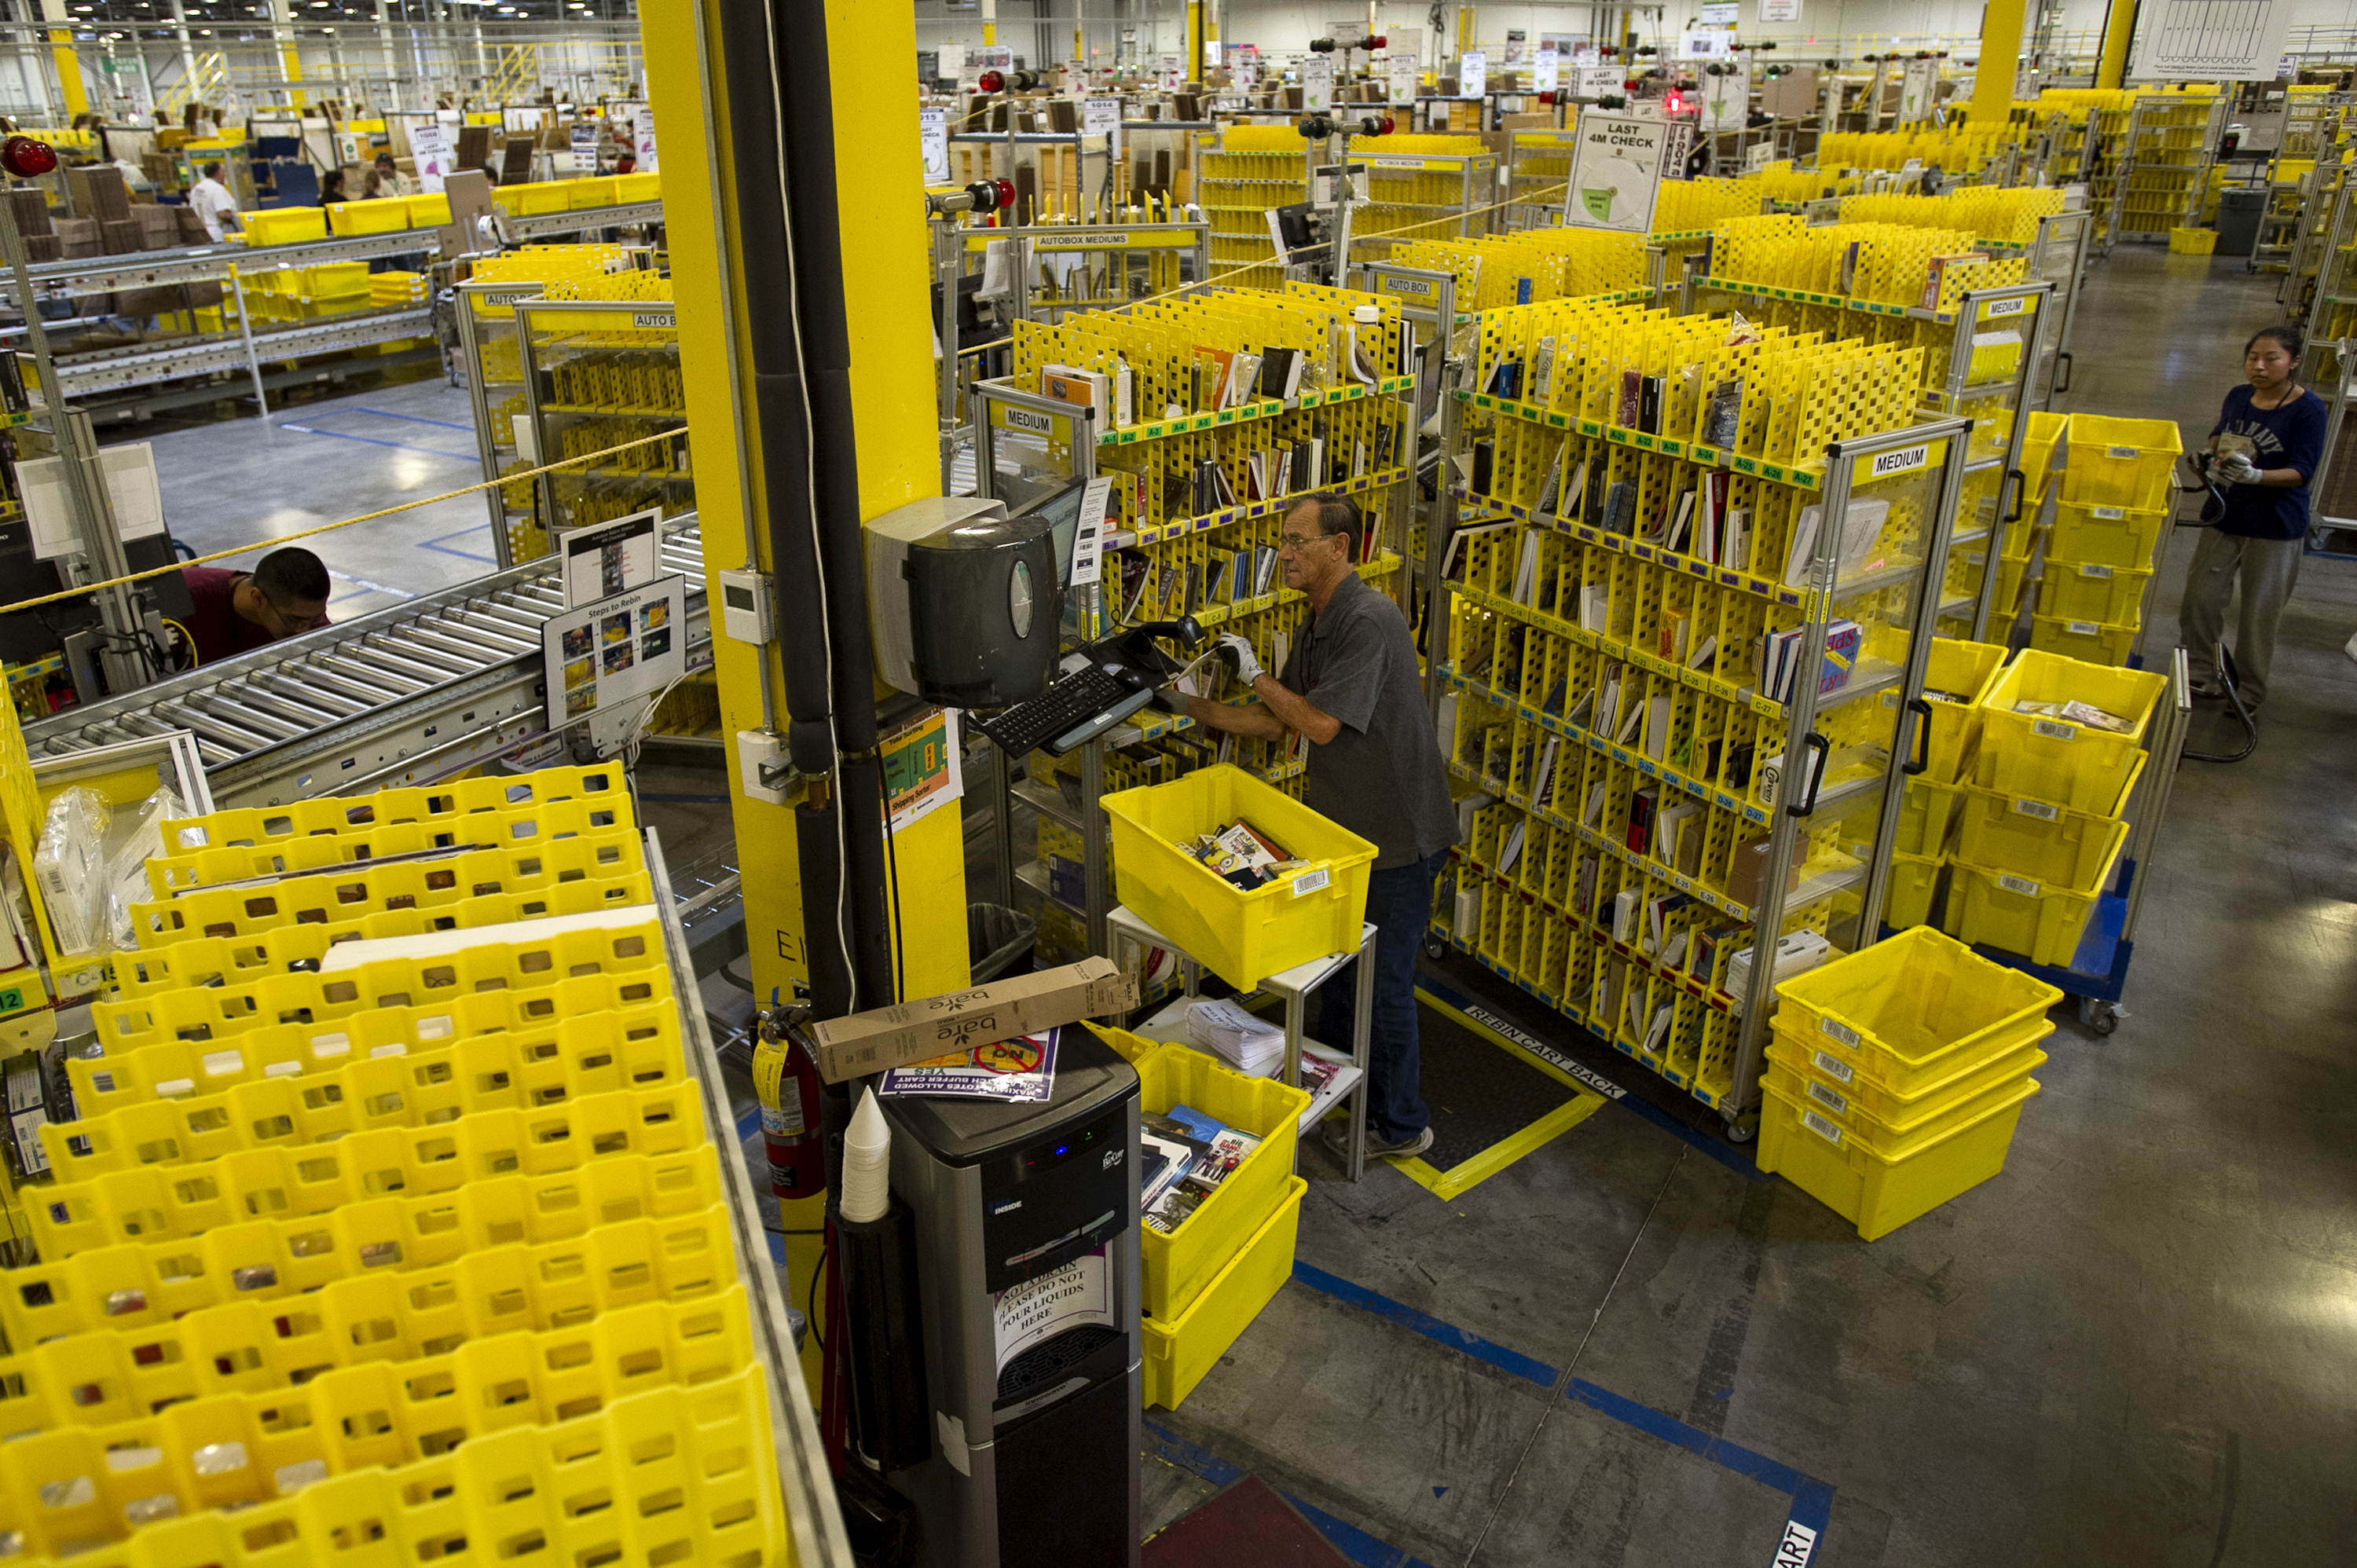 Operations Inside the Amazon.com Fulfillment Center On Cyber Monday